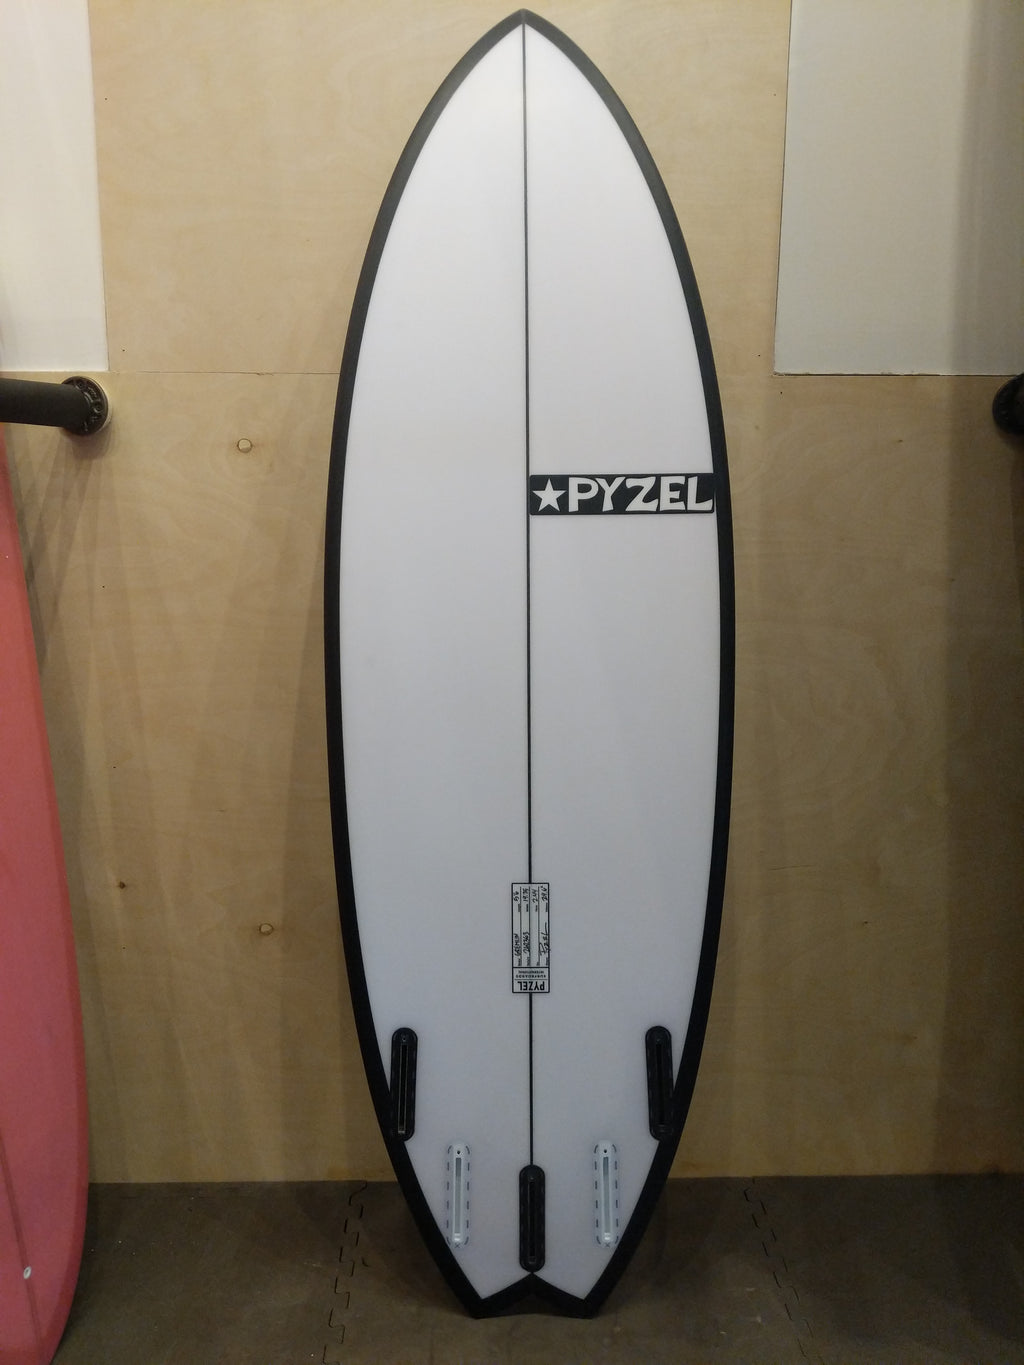 Pyzel Surfboards - The Gremlin 5'6 Swollow Tail